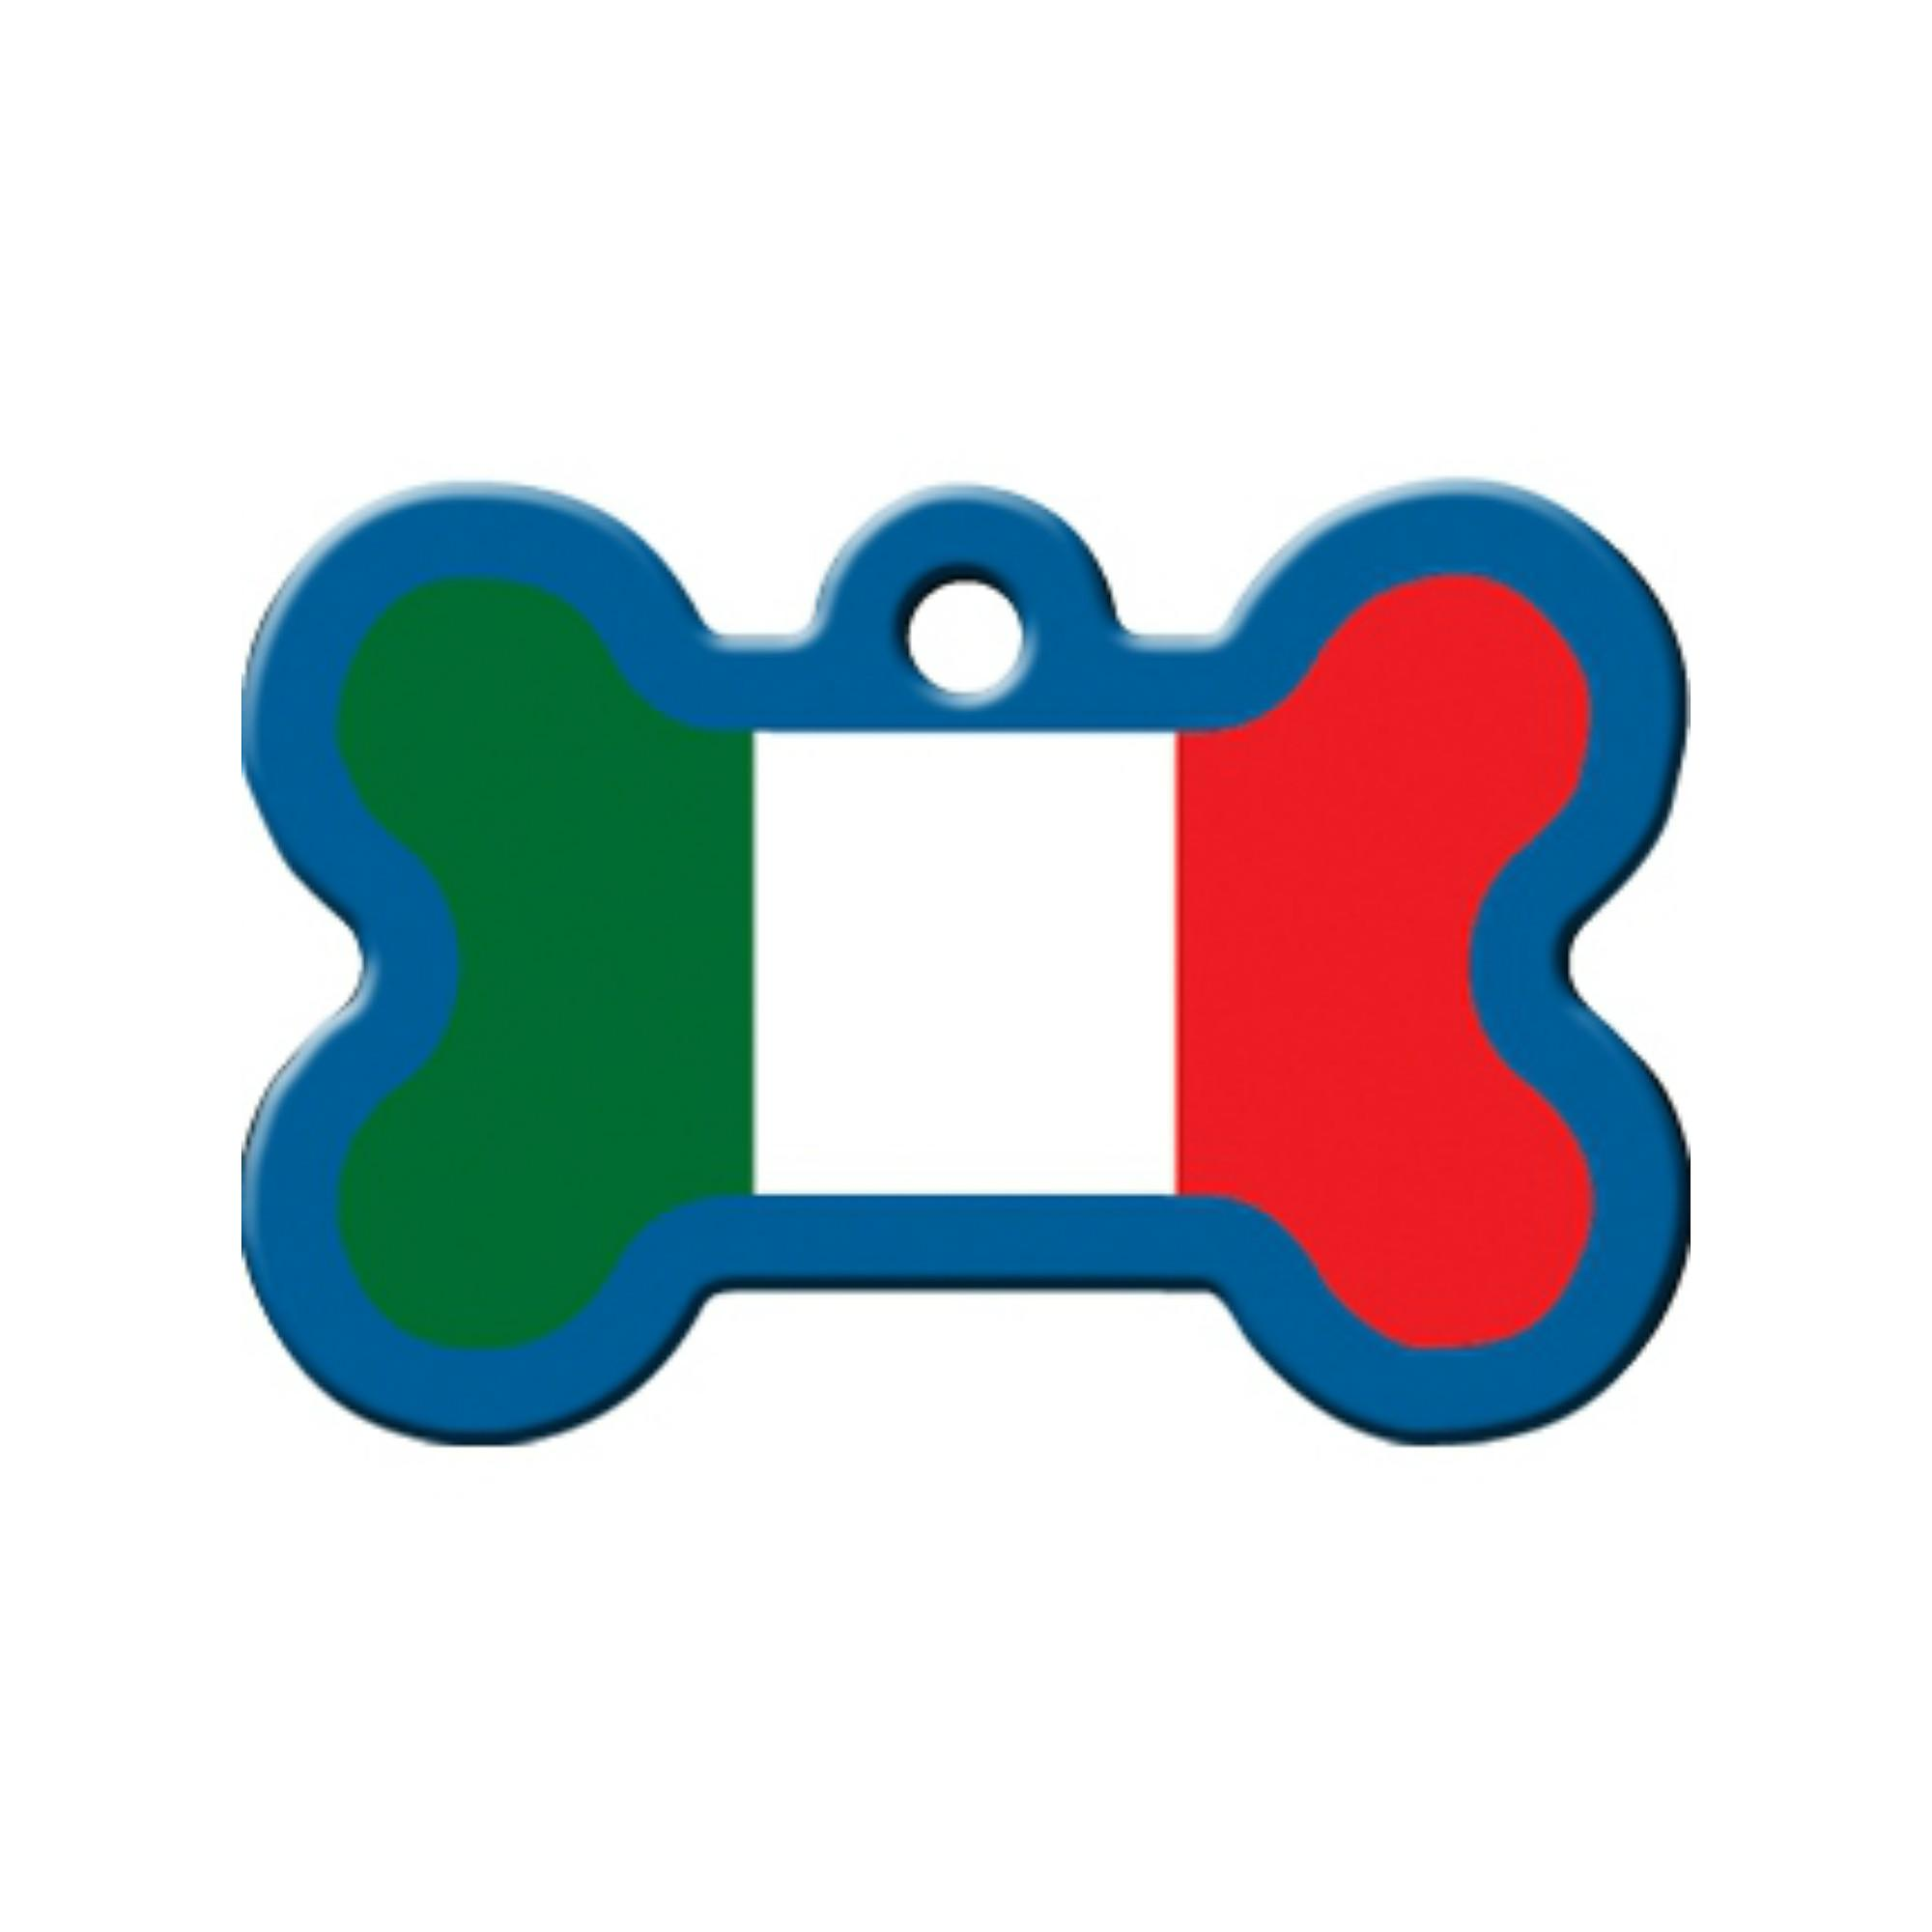 Bone Large Chrome Engravable Pet I.D. Tag - Italian Flag